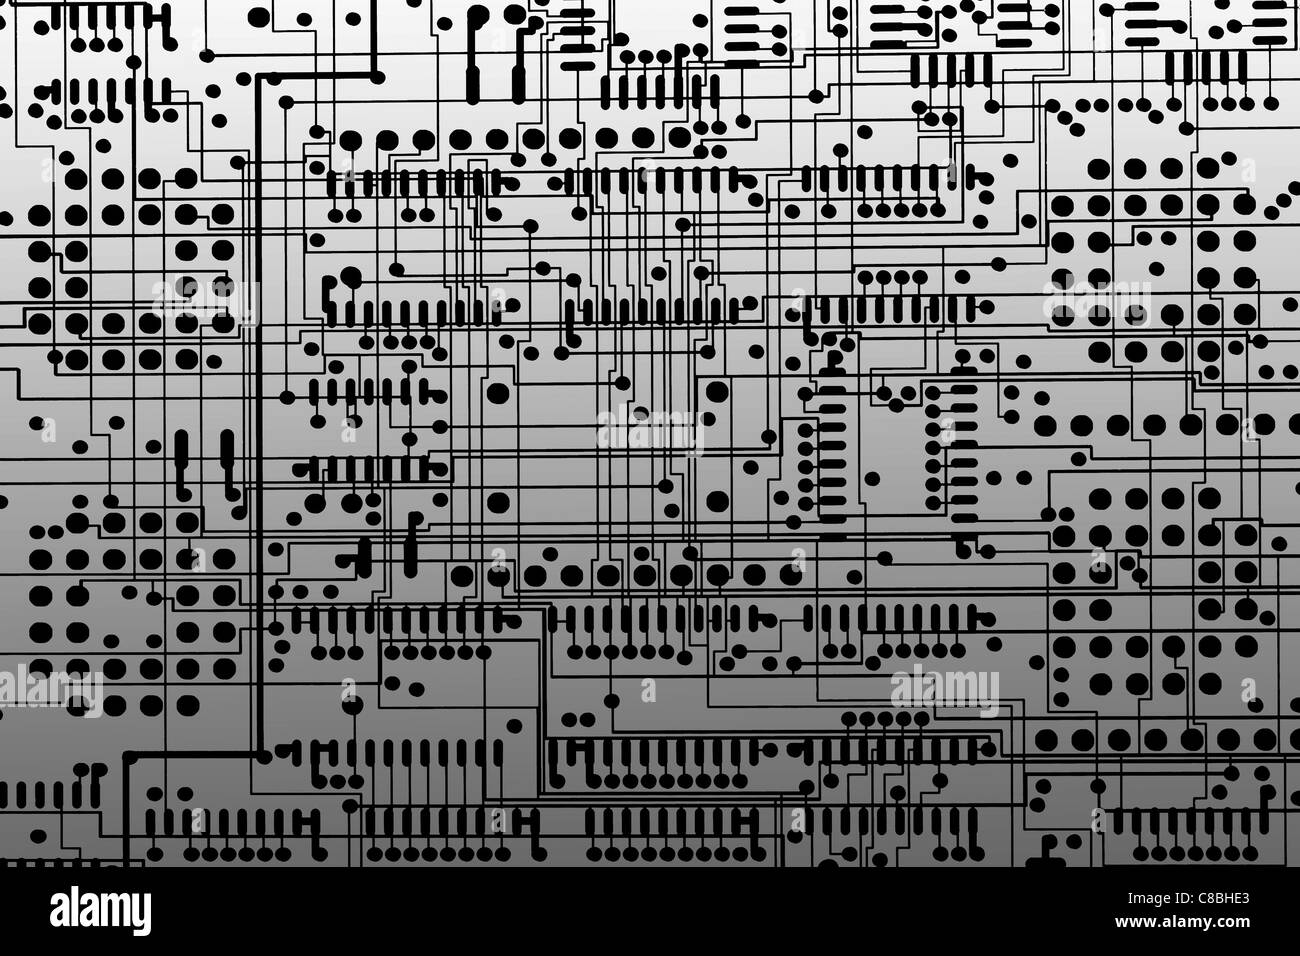 digital enhancement - two layers overlapped on film layout of multilayer printed circuit board - Stock Image